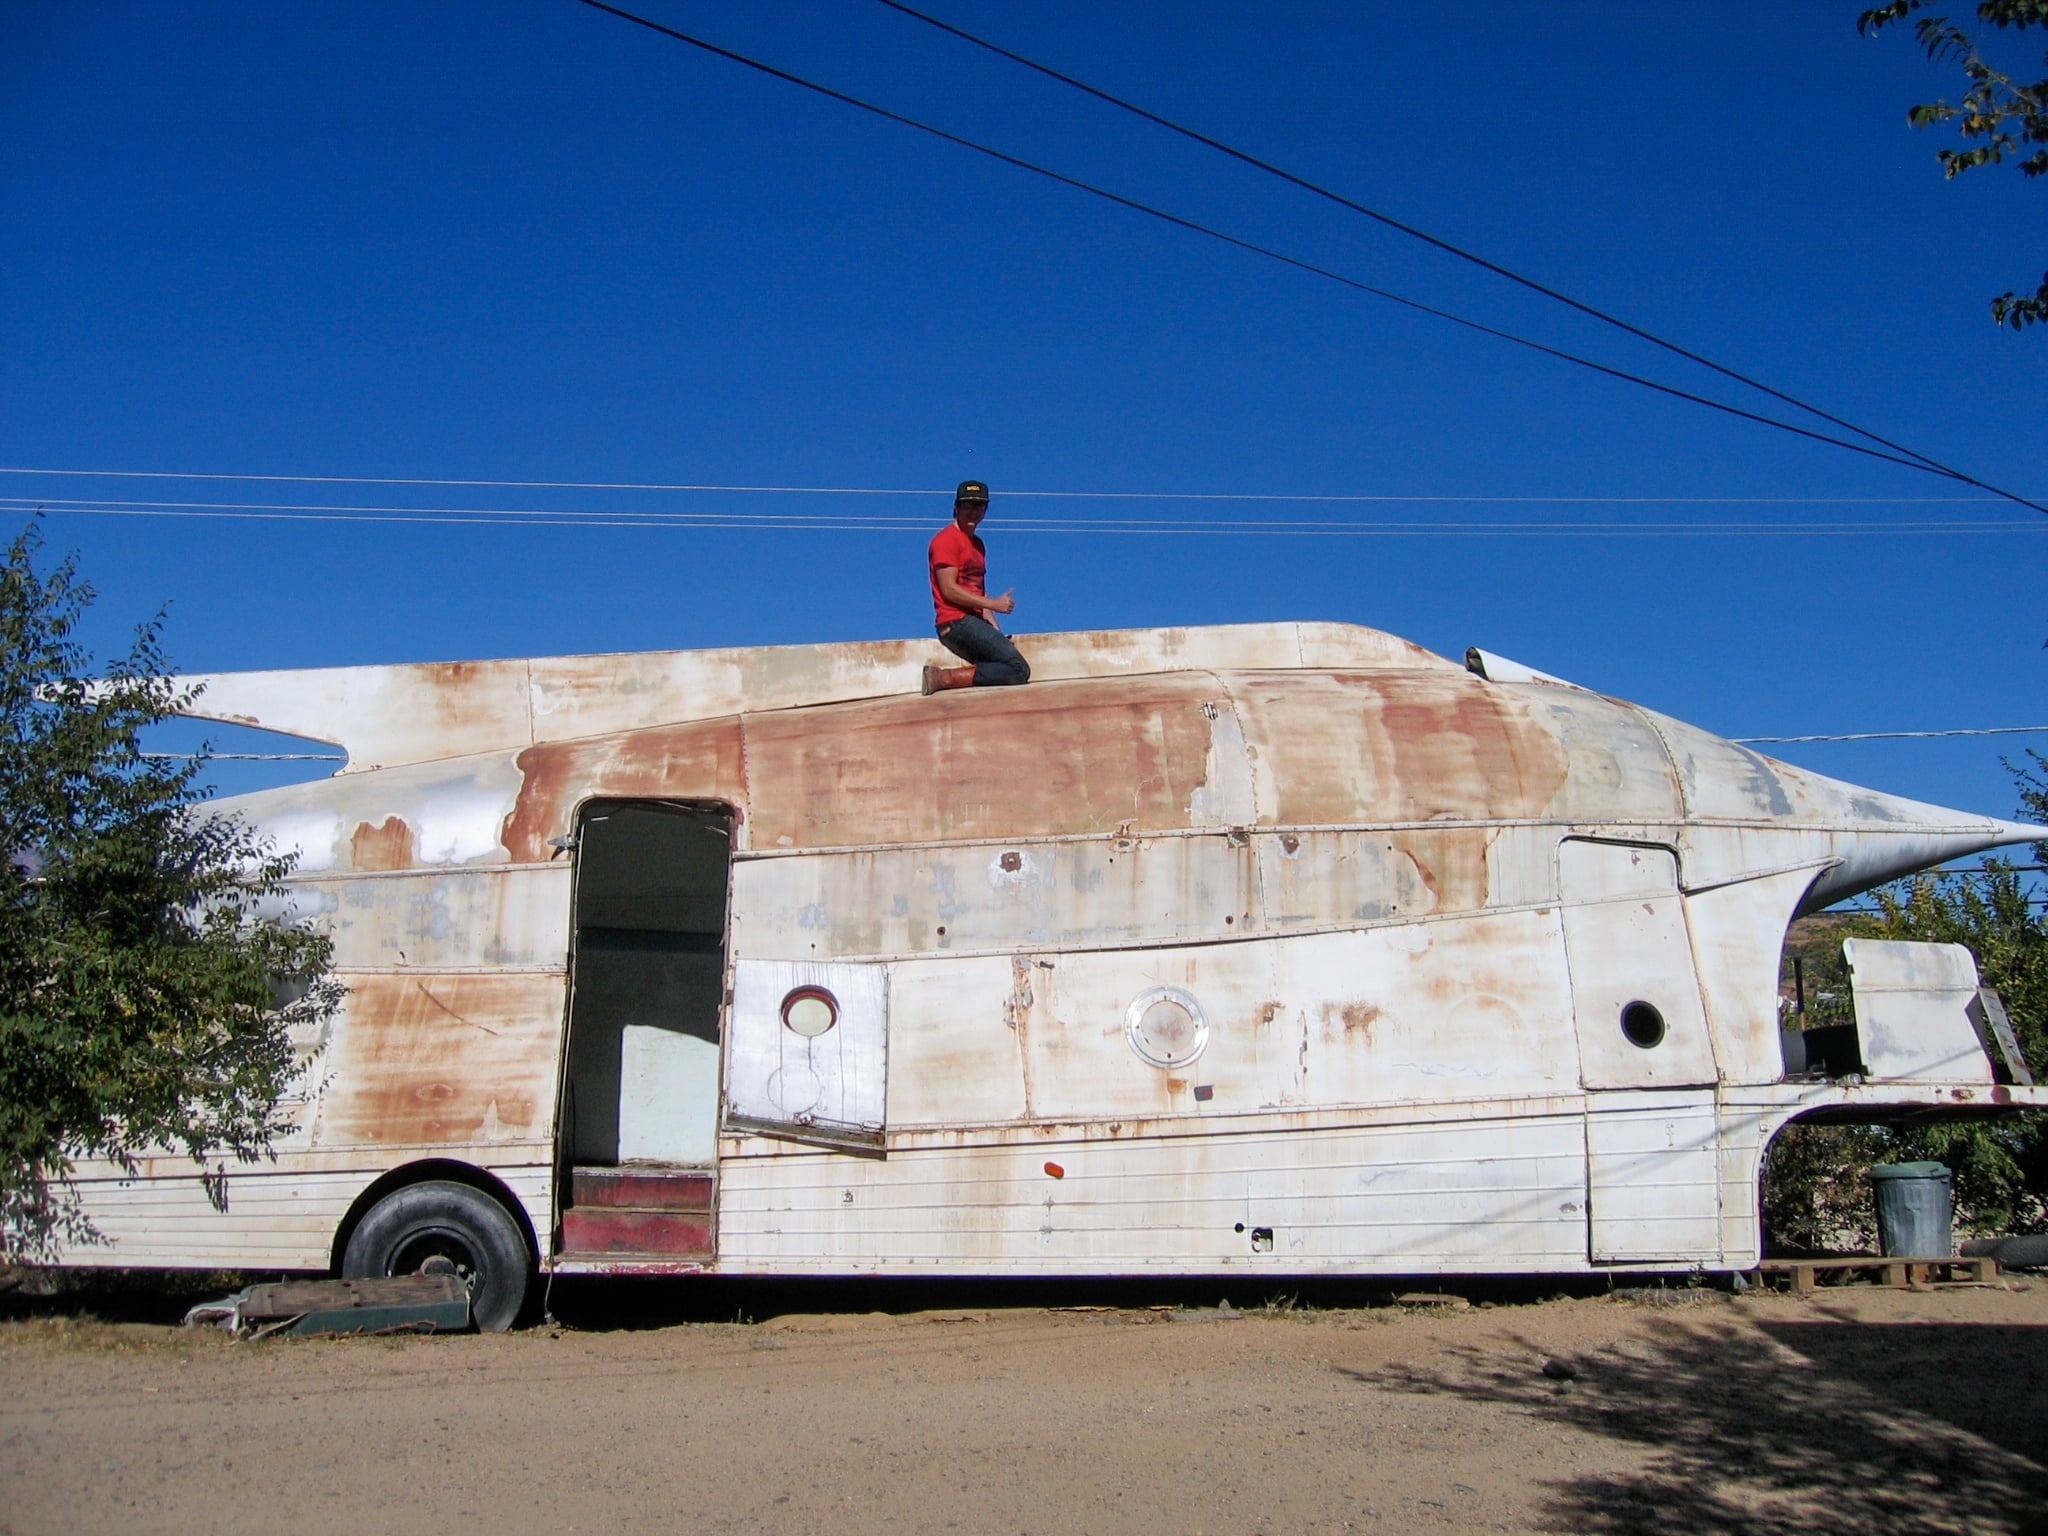 Luer Rocket - Prescott, Arizona; circa 2007 prior to cross country transport to Space Age Museum.